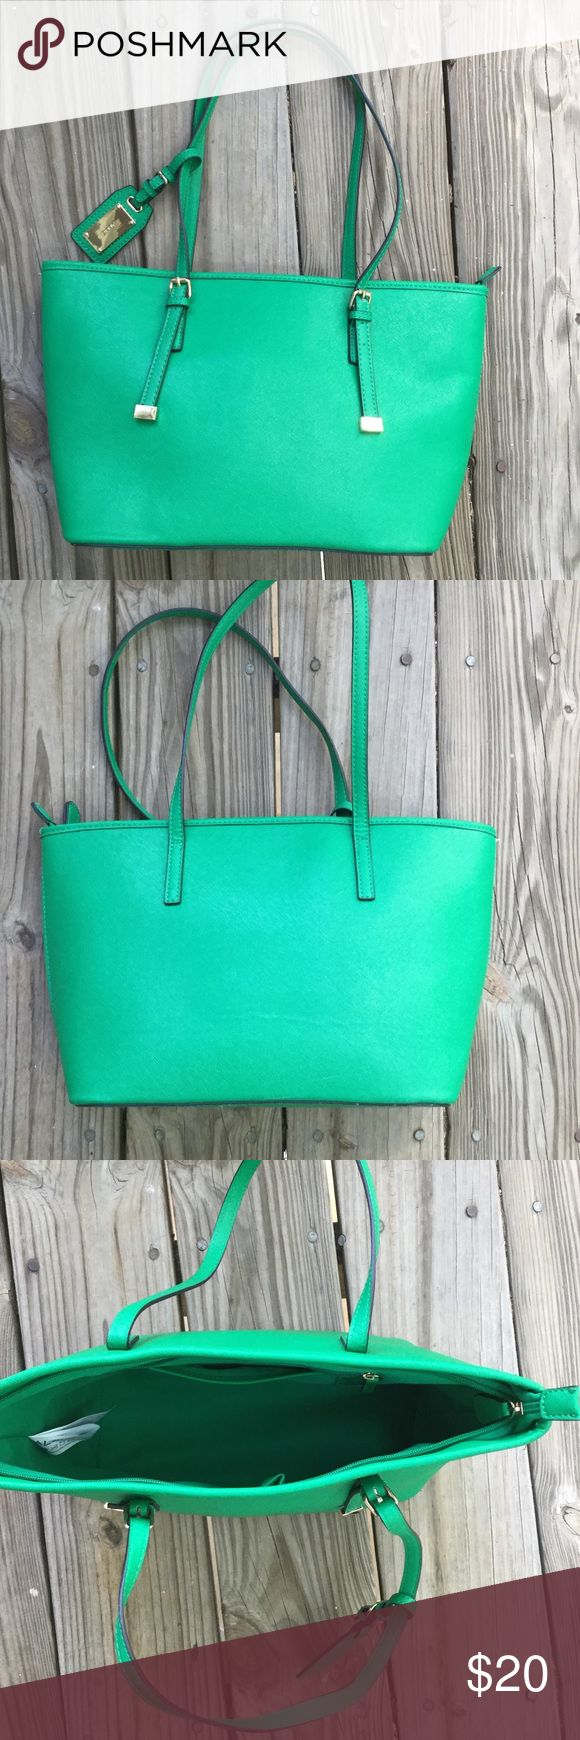 """Aldo Tote Beautiful Green Bag. Top zipper and one zipper inside. Two side slots for keys and phone. Height- 9"""" length- 14.5"""" Aldo Bags Totes"""